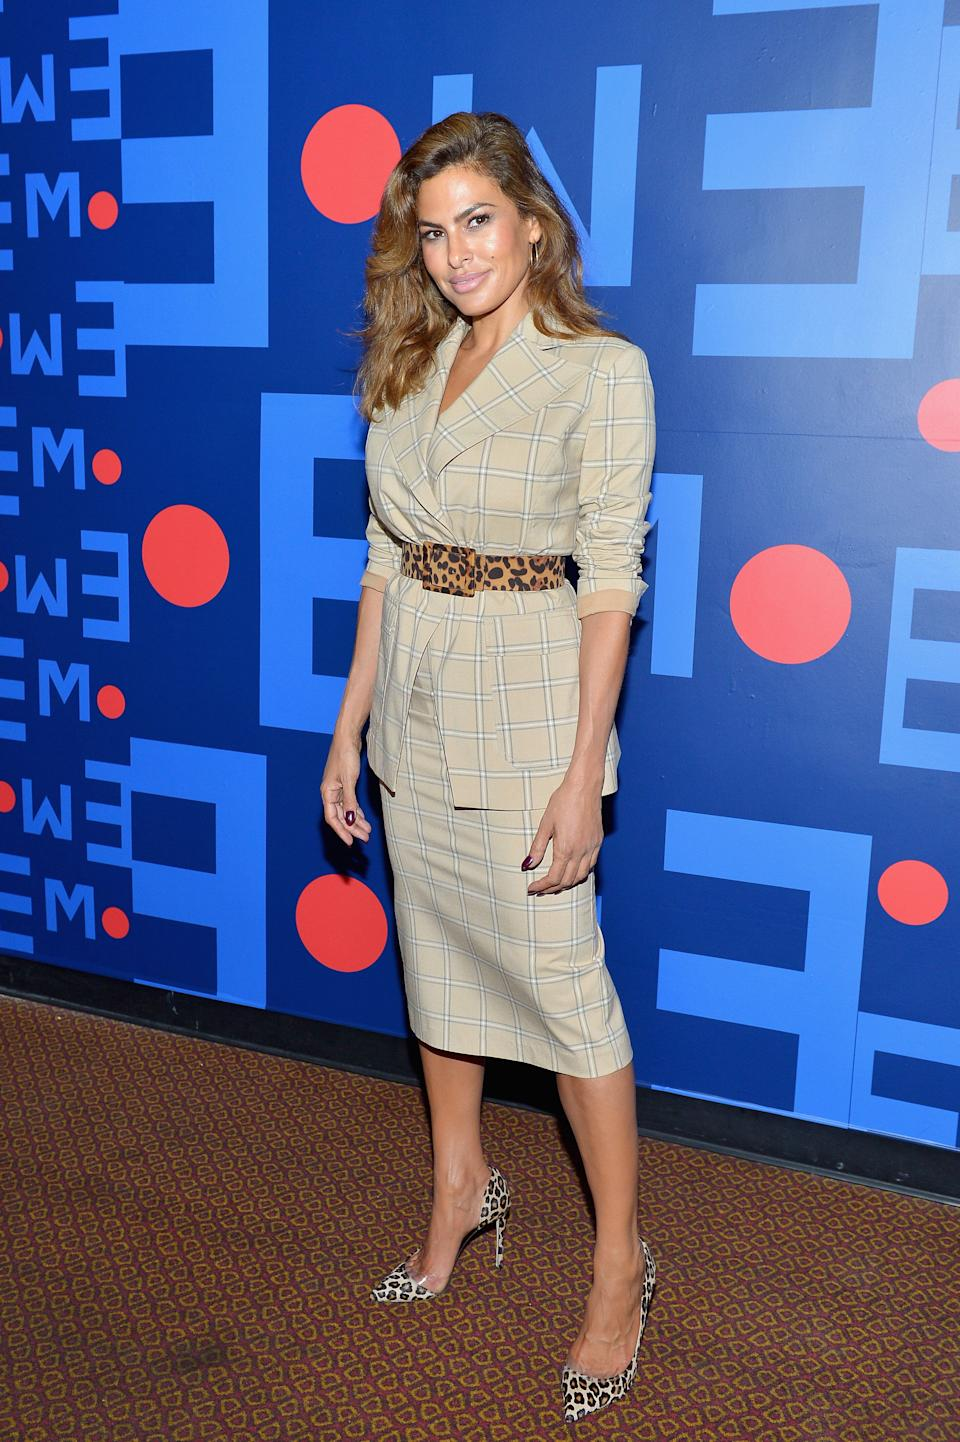 Eva Mendes attends Eva Mendes for New York & Company Fall Holiday 2018 Fashion Show at The Palace Theatre on September 13, 2018 in Los Angeles, California. (Photo: Donato Sardella via Getty Images)